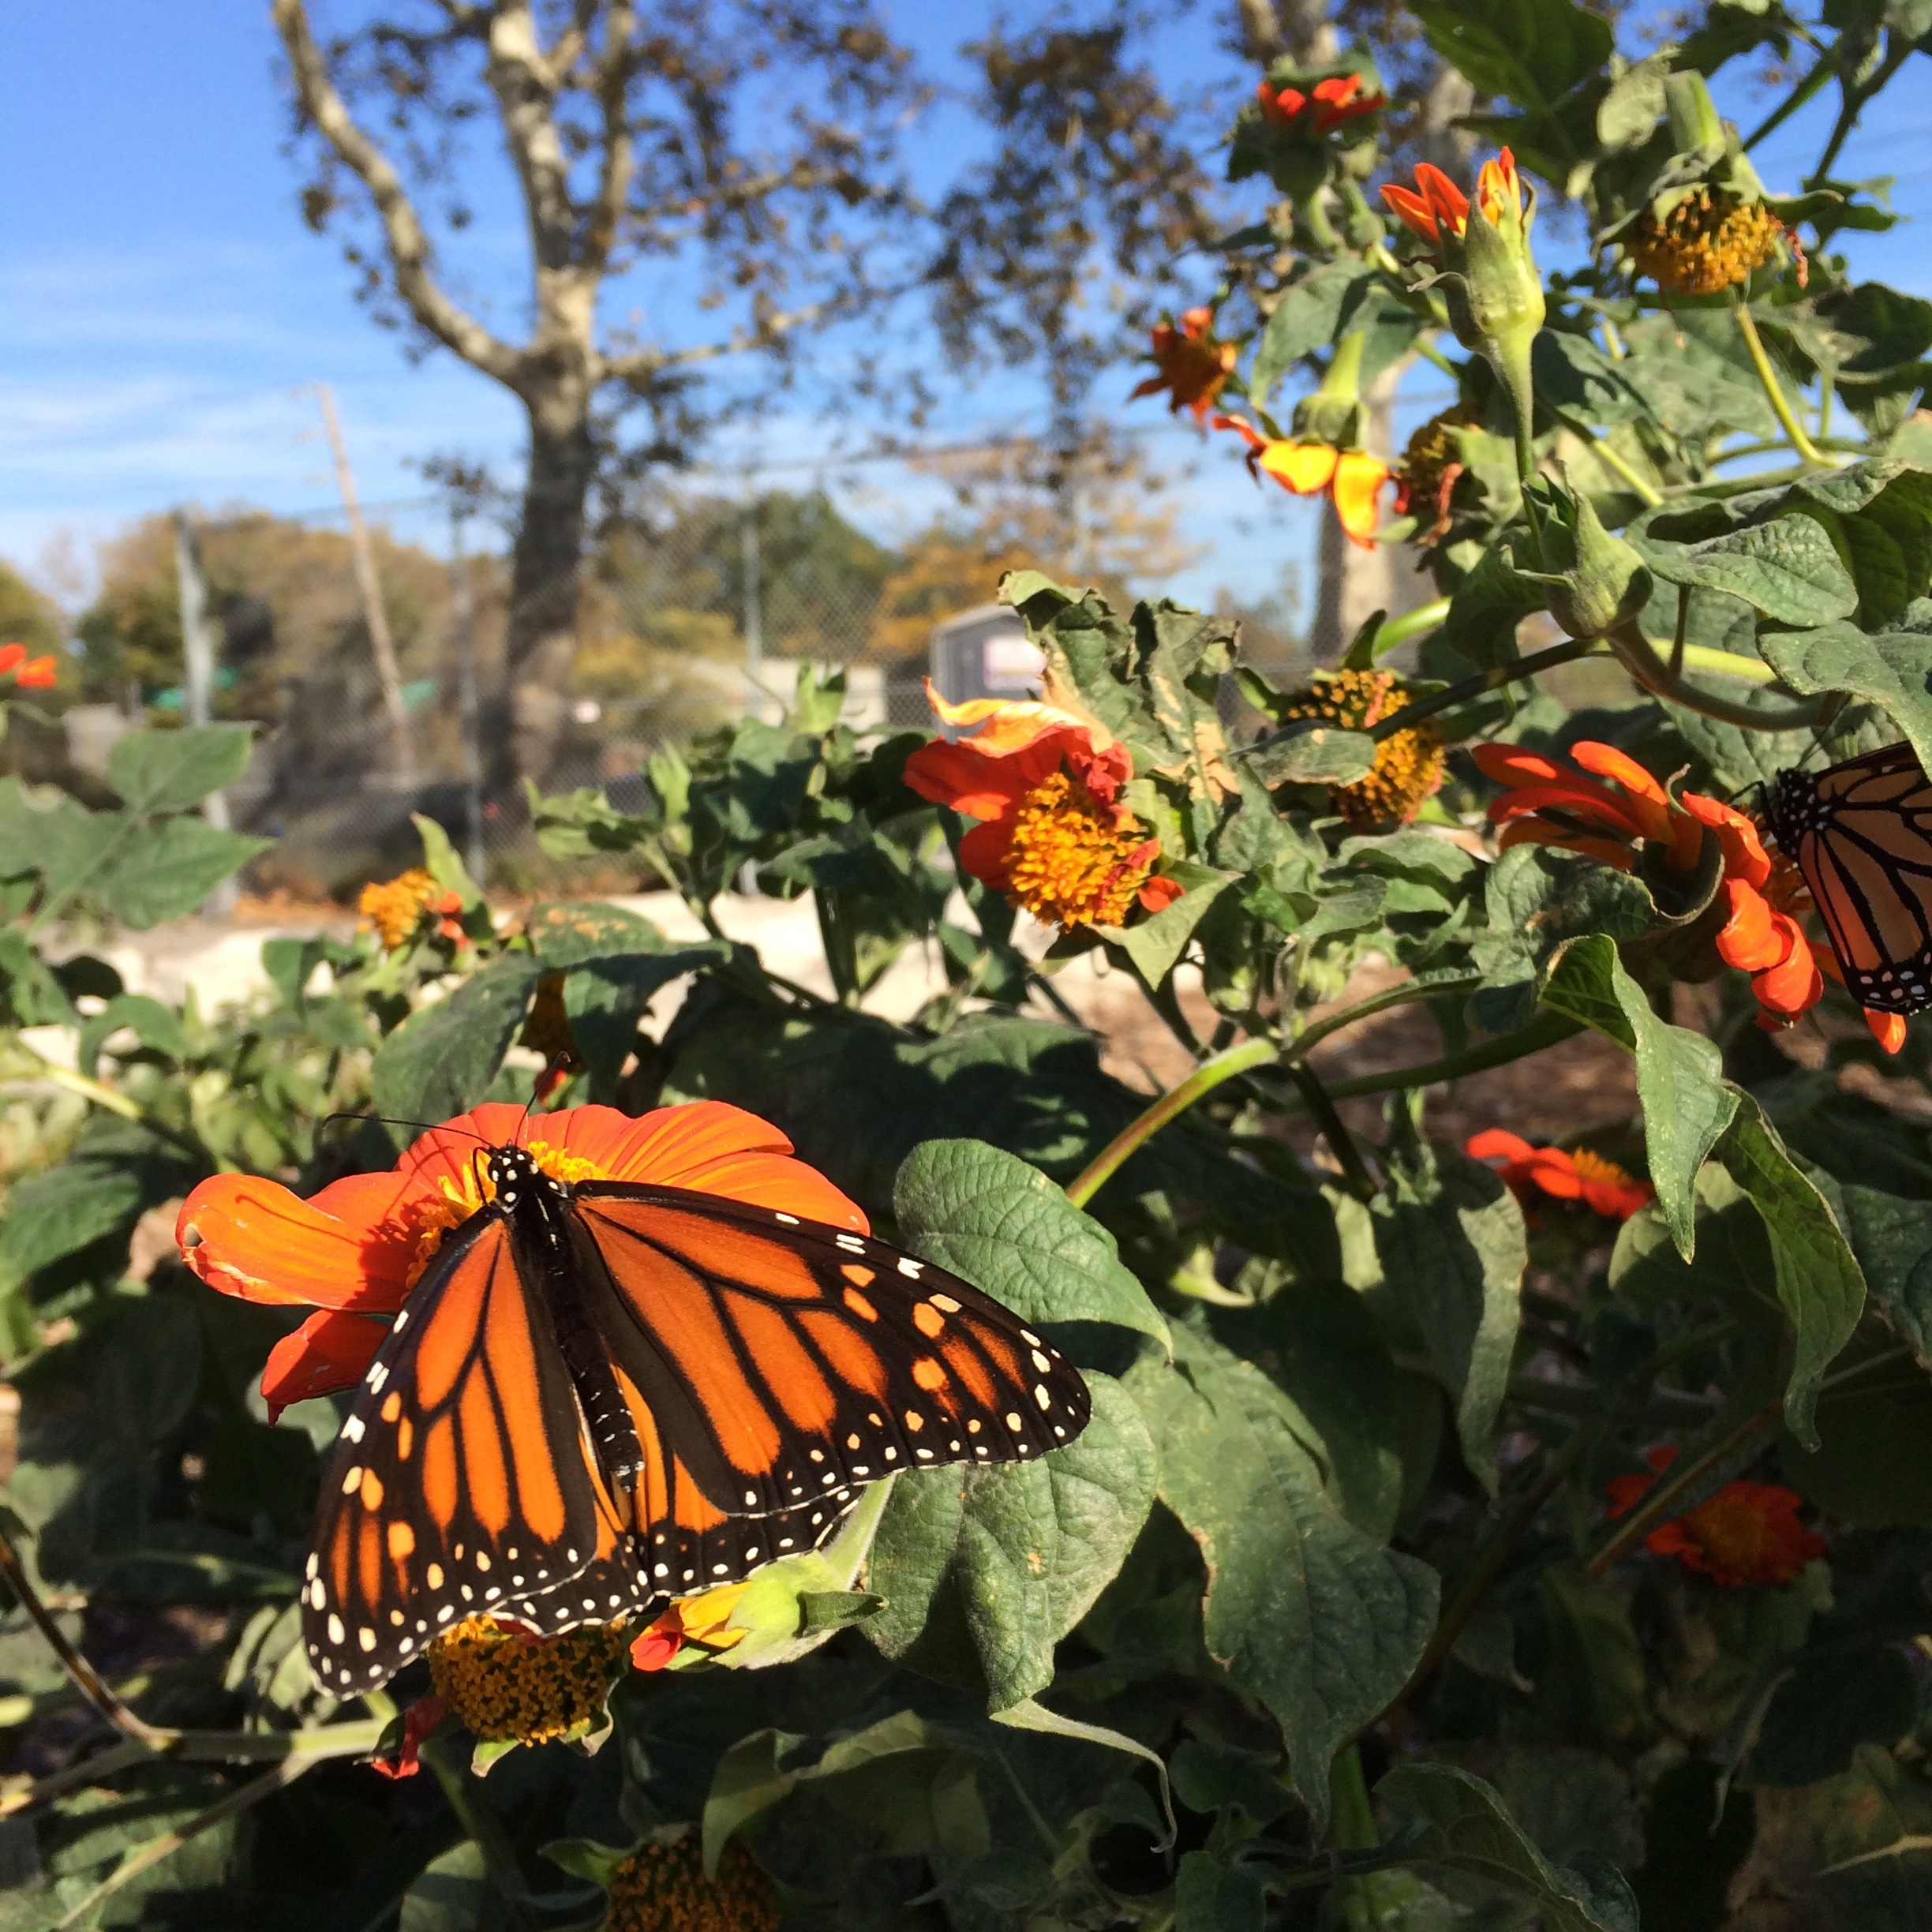 Monarchs visiting the farm